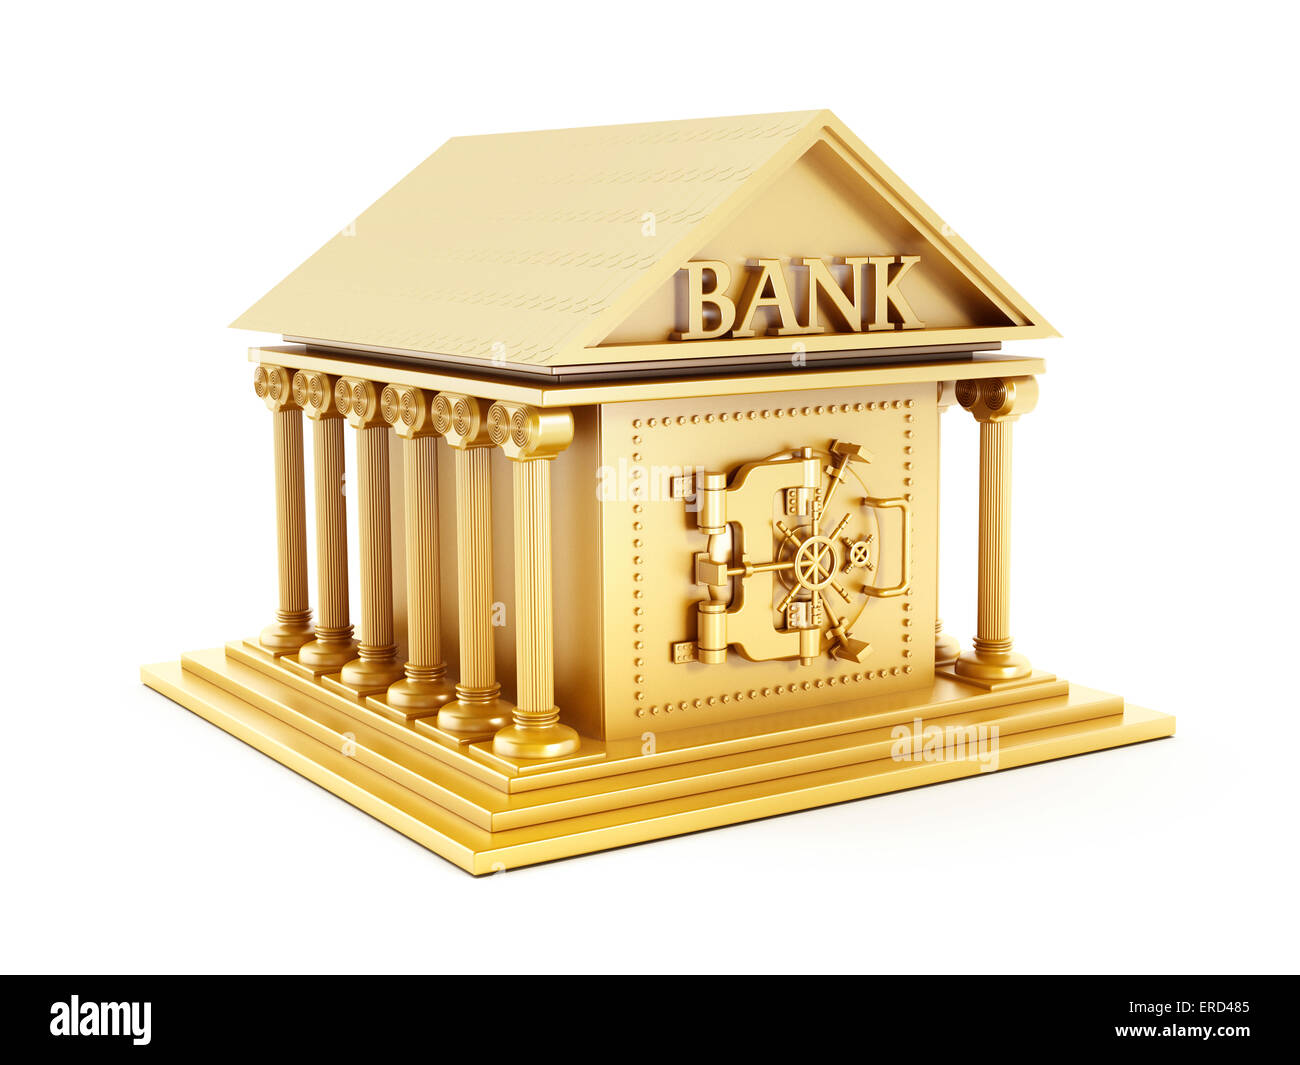 Golden bank building isolated on white. - Stock Image